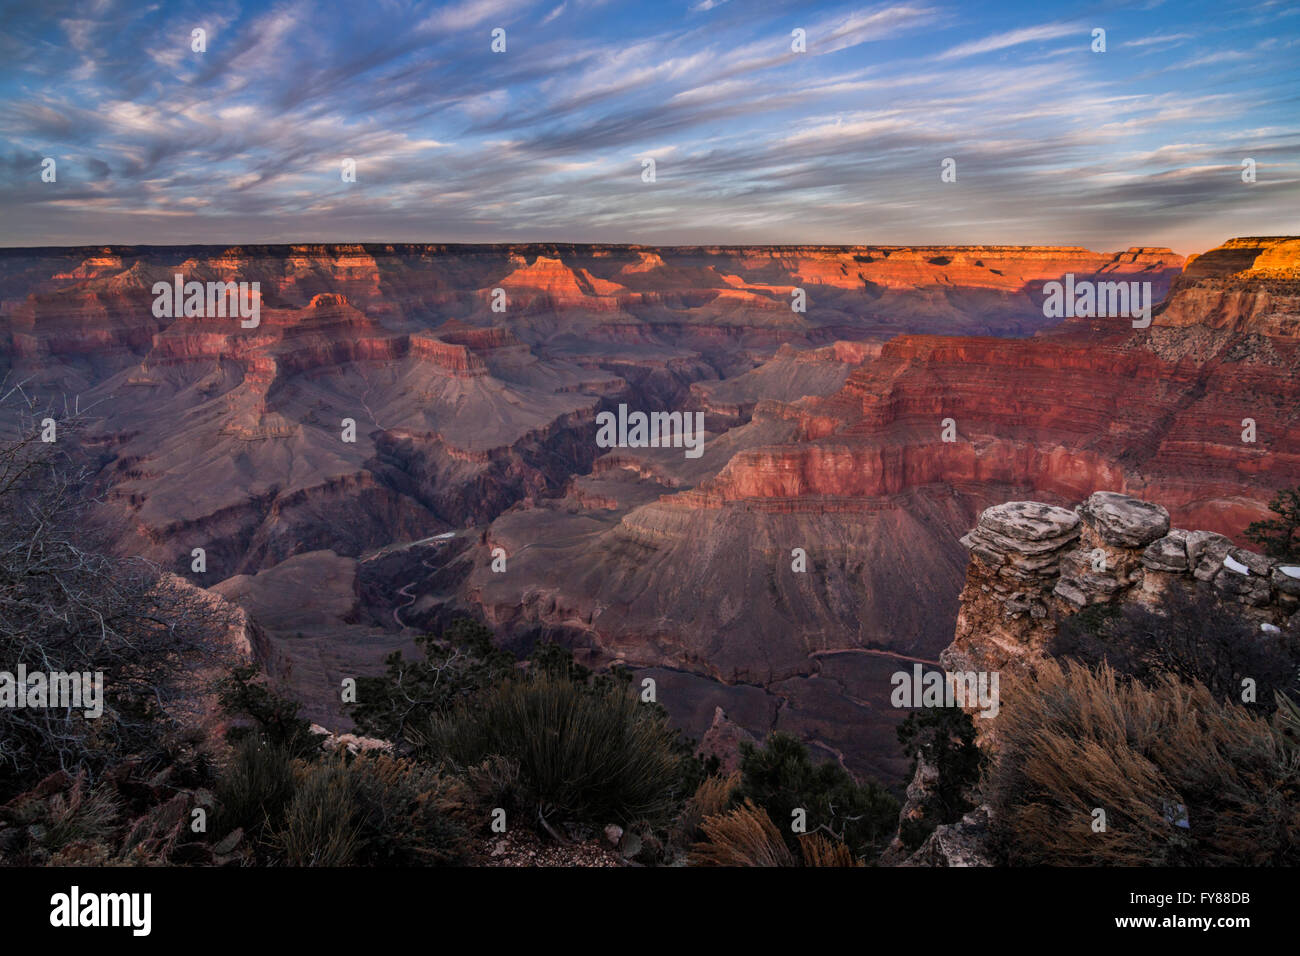 The last rays of the setting sun light up the rim of the Grand Canyon in Arizona Stock Photo